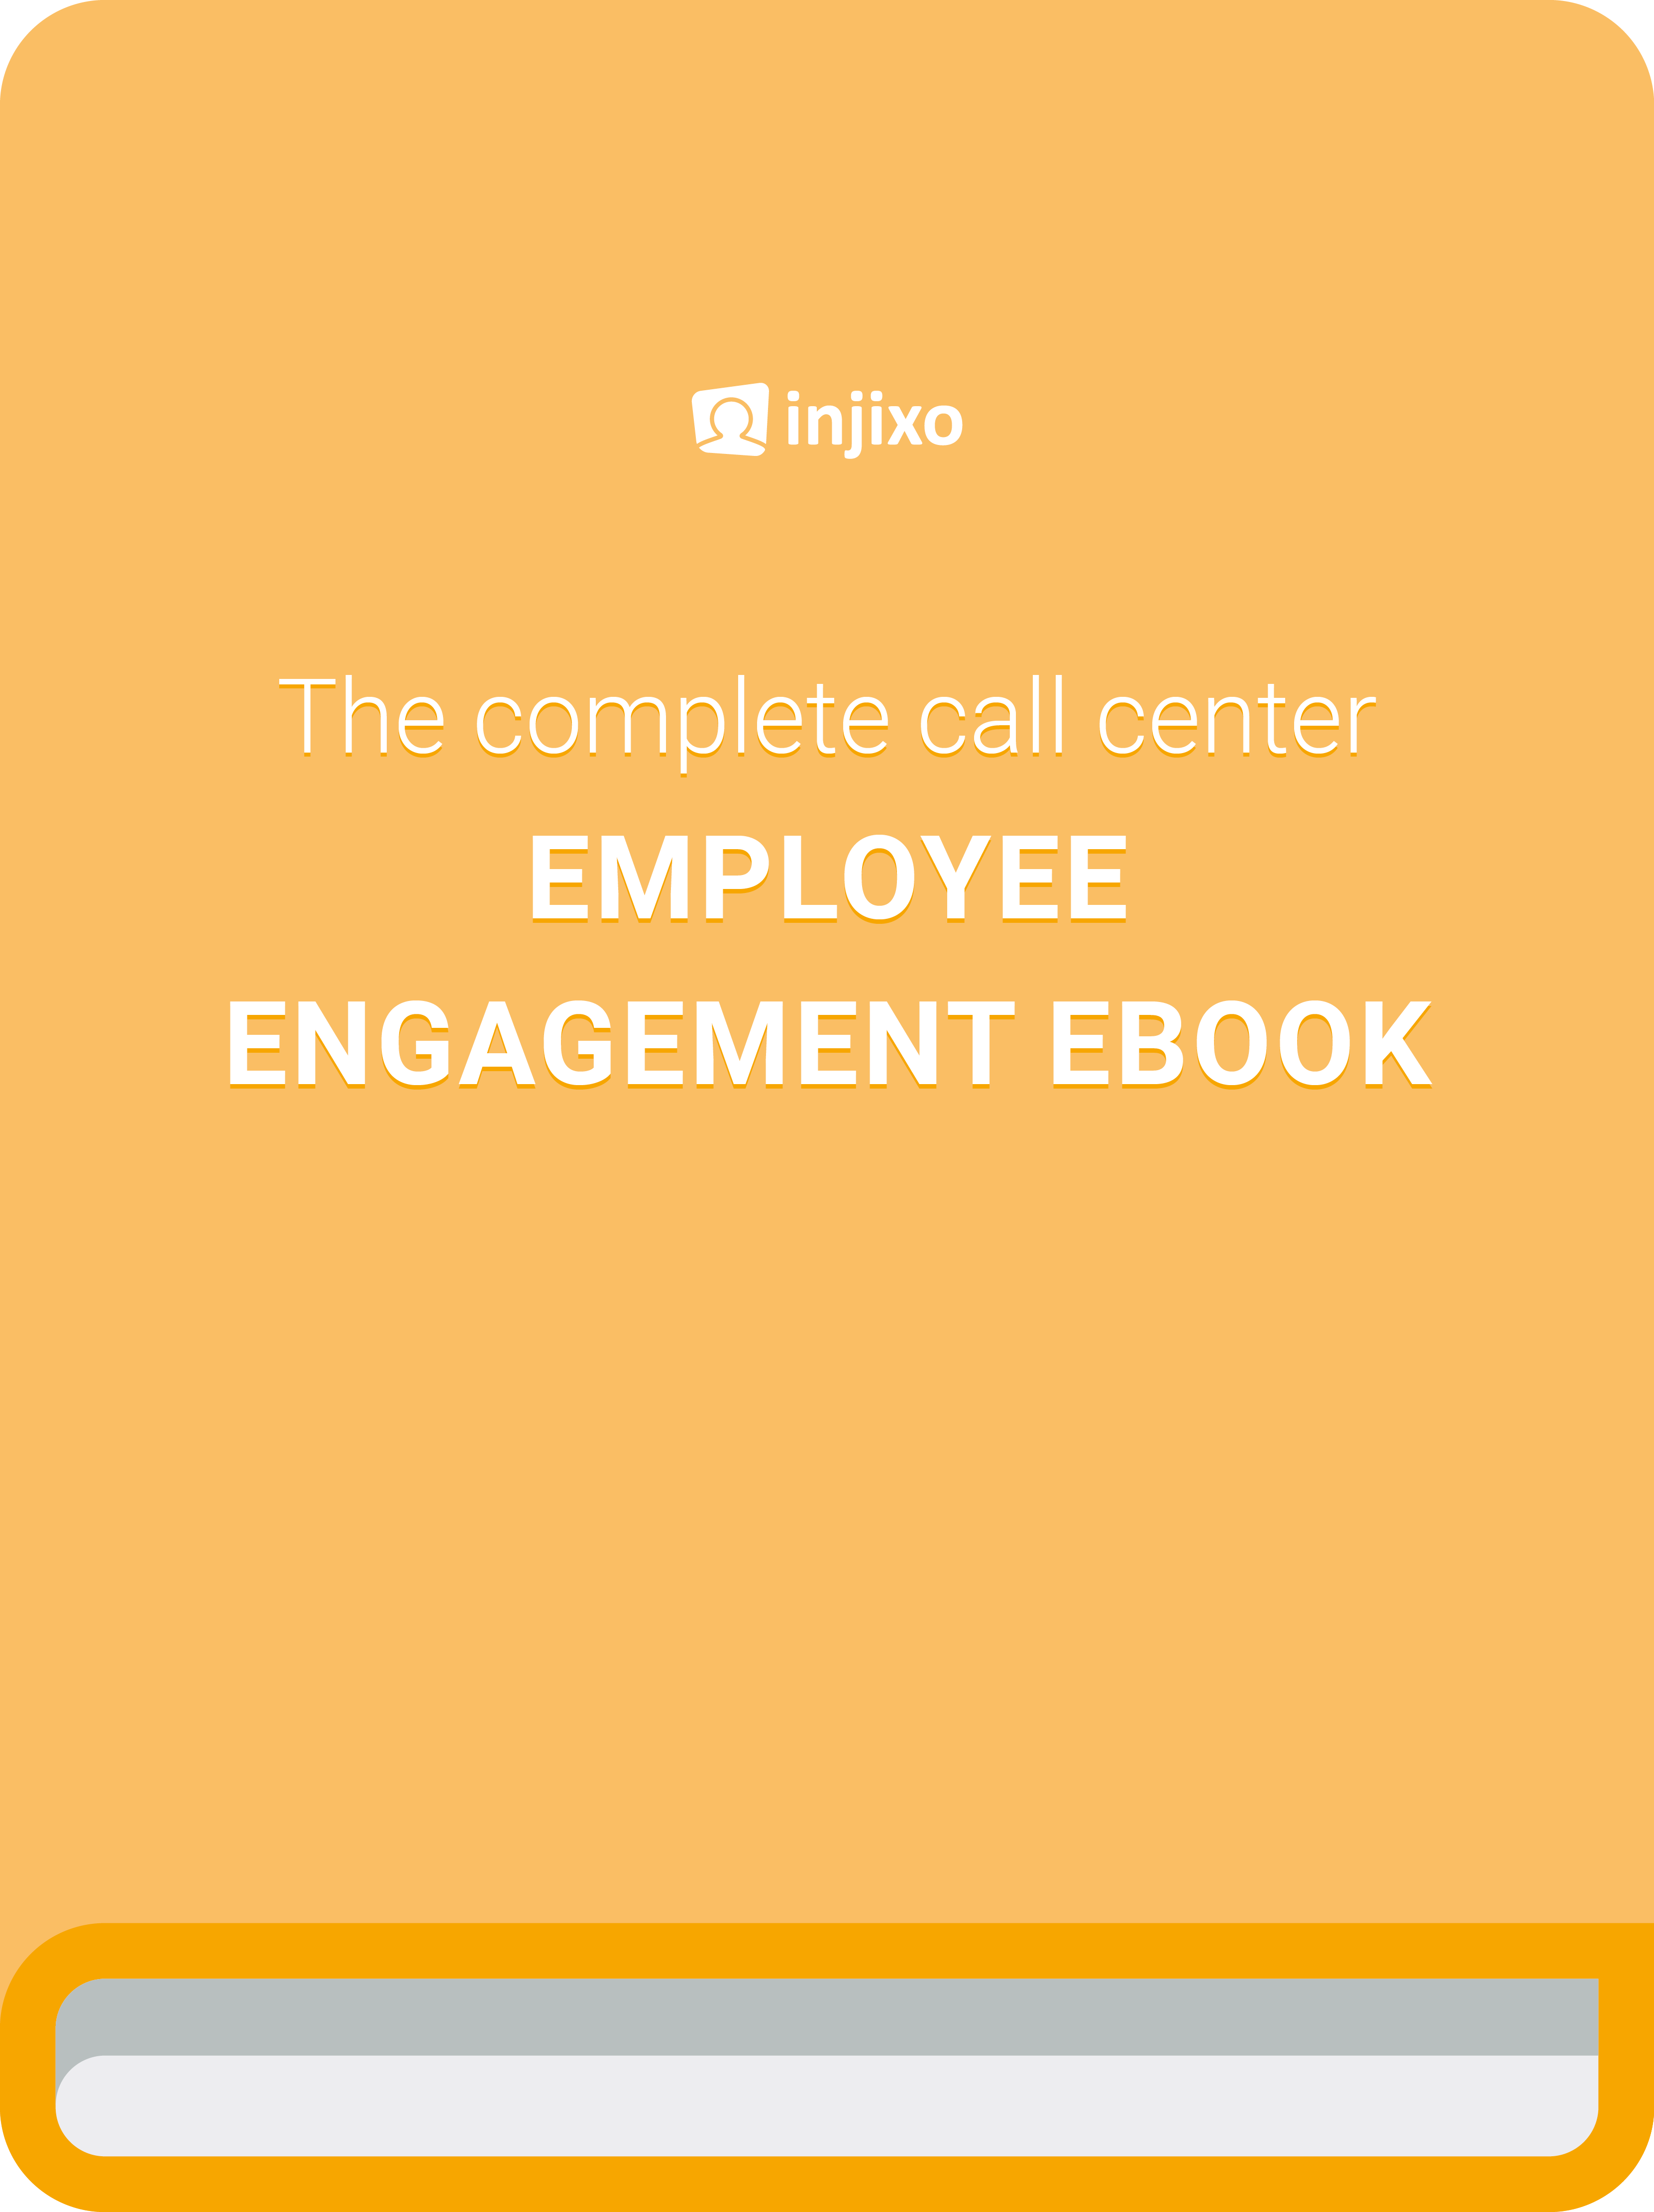 injixo - EN - ebook employee engangement cover